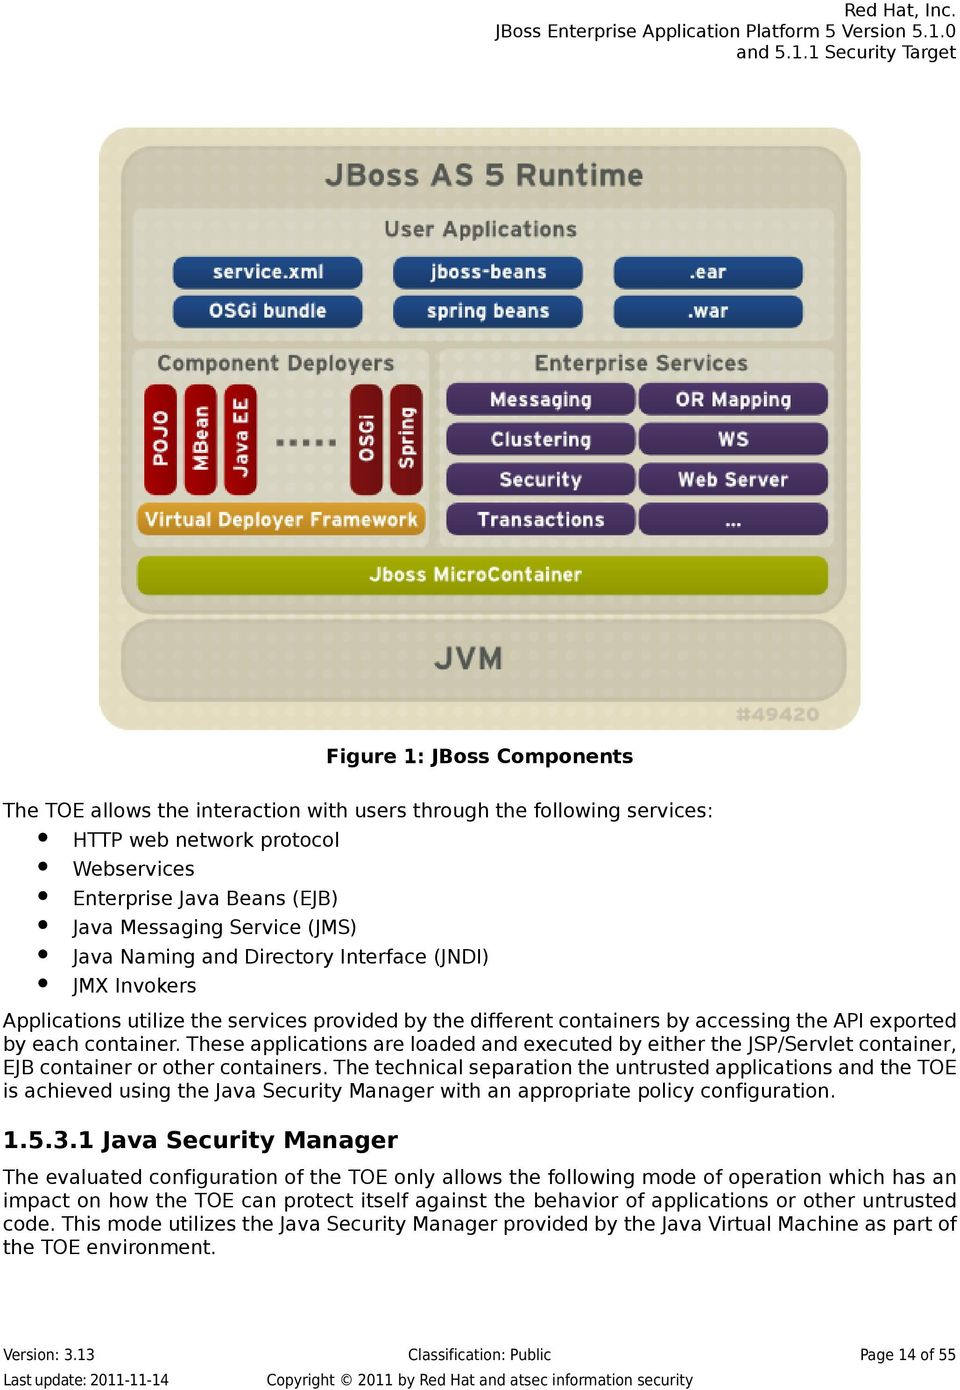 These applications are loaded and executed by either the JSP/Servlet container, EJB container or other containers.